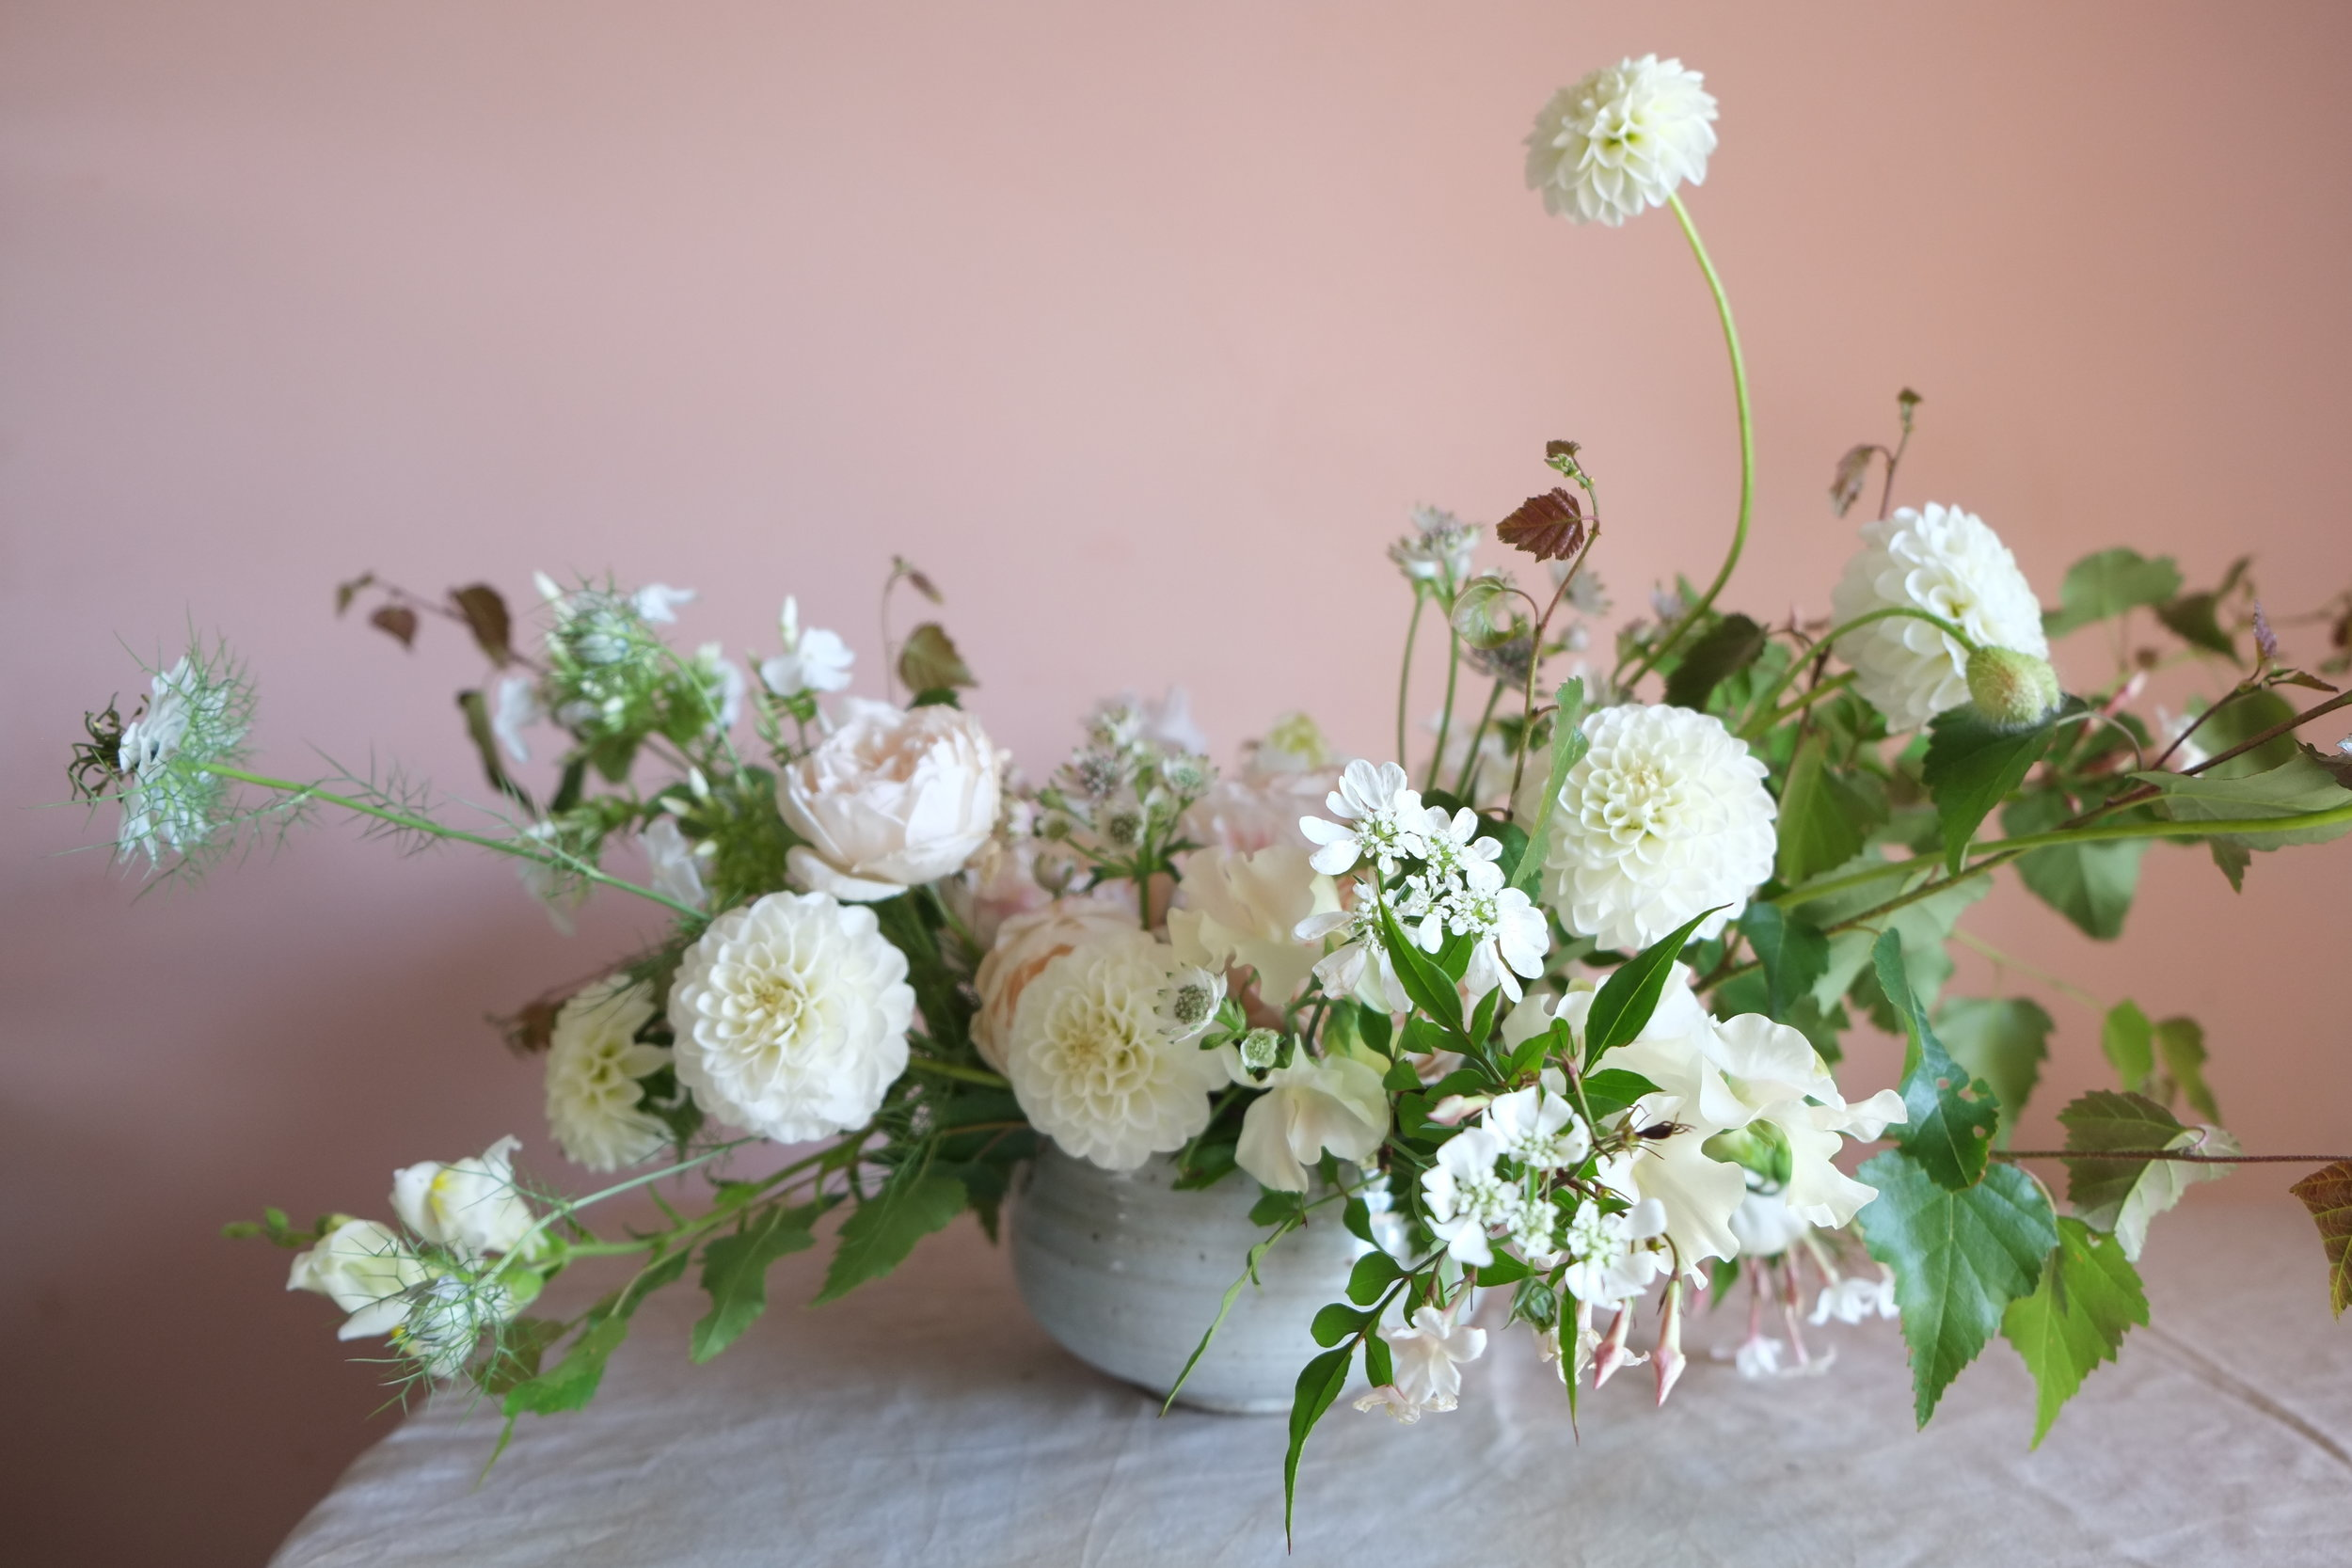 July wedding table inspiration with low bowl arrangement.